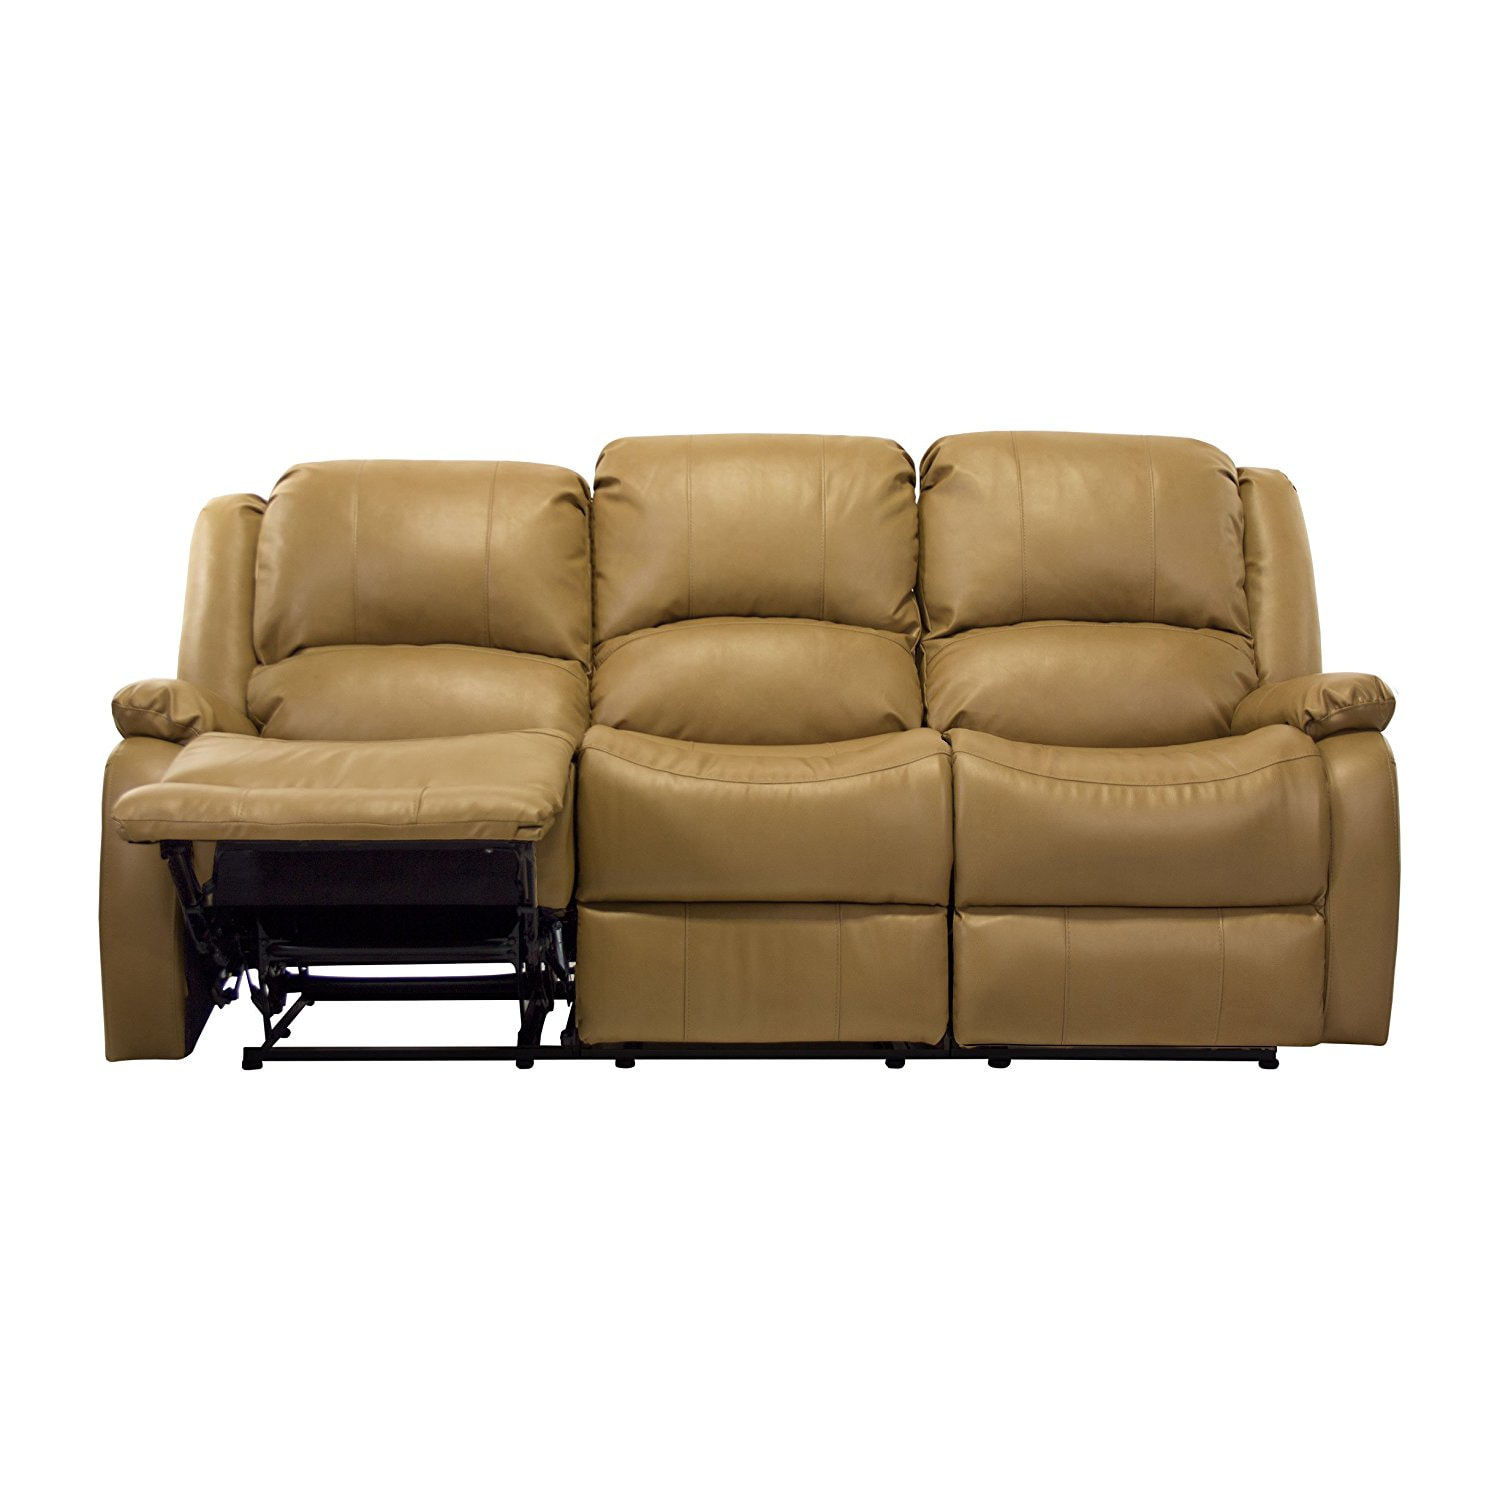 triple reclining sofa most comfortable bed in the world 80 quot recliner w drop down console rv wall